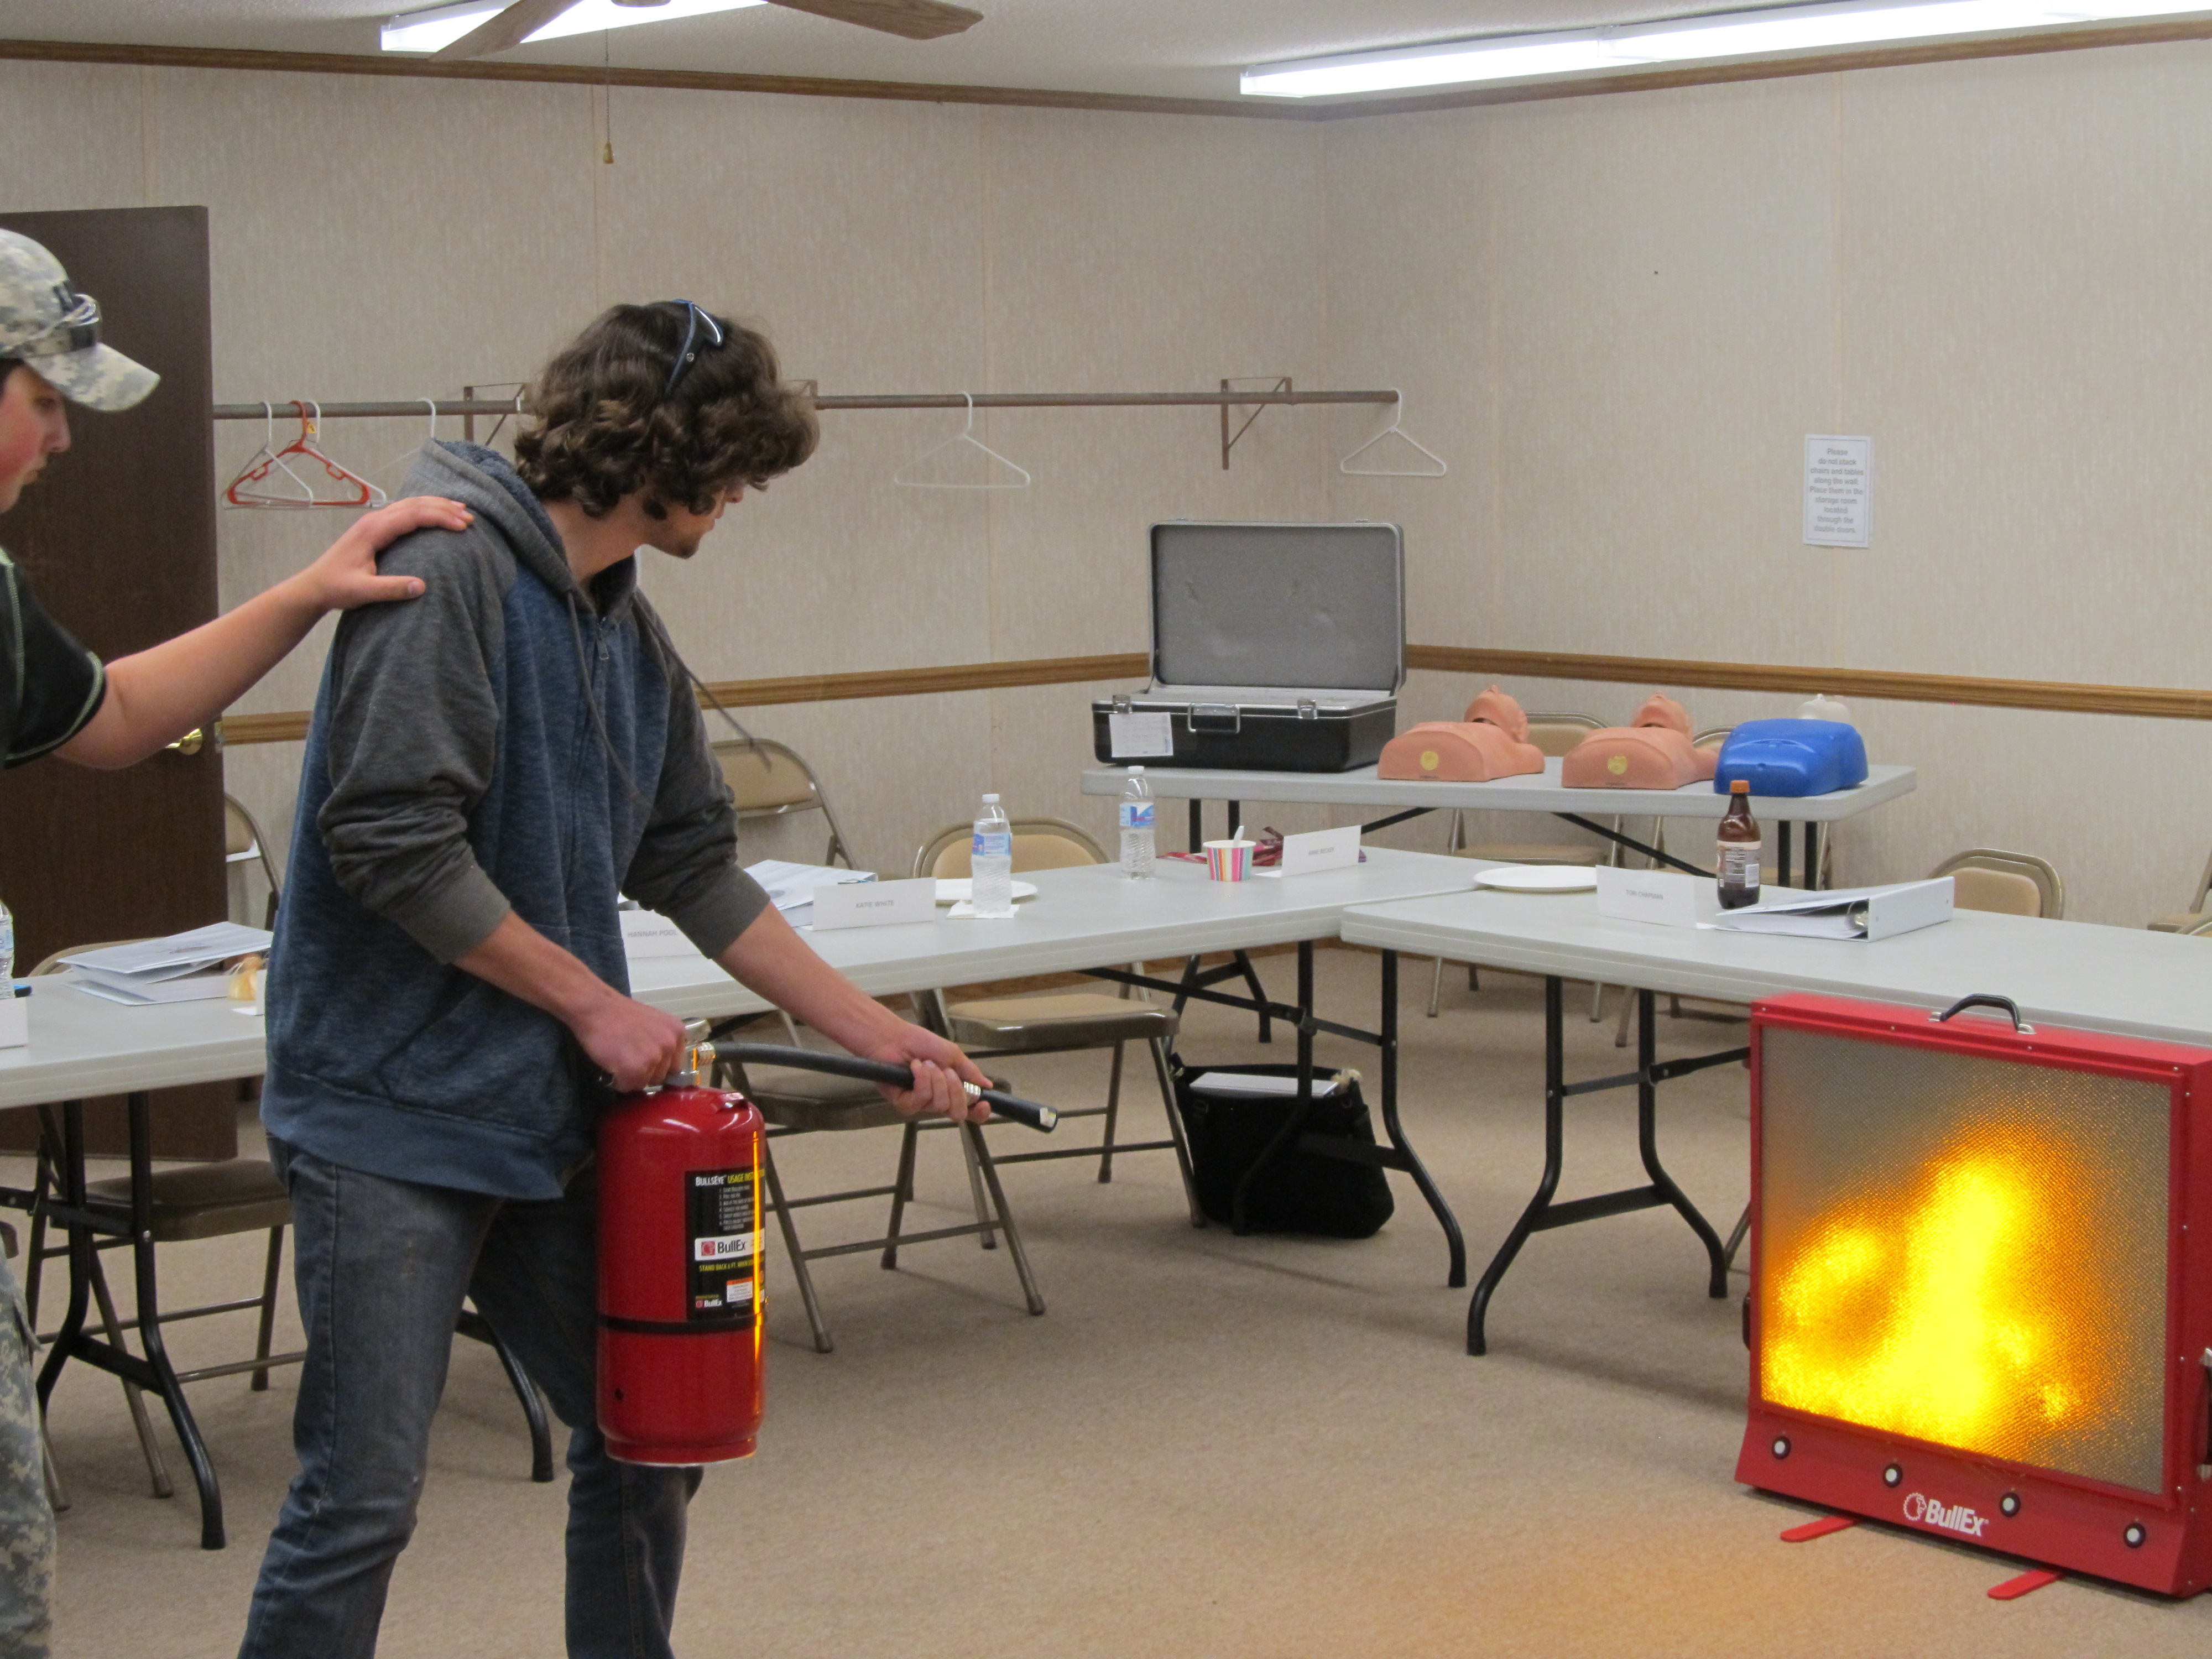 Teen practicing putting out a simulated fire with a fire extinguisher